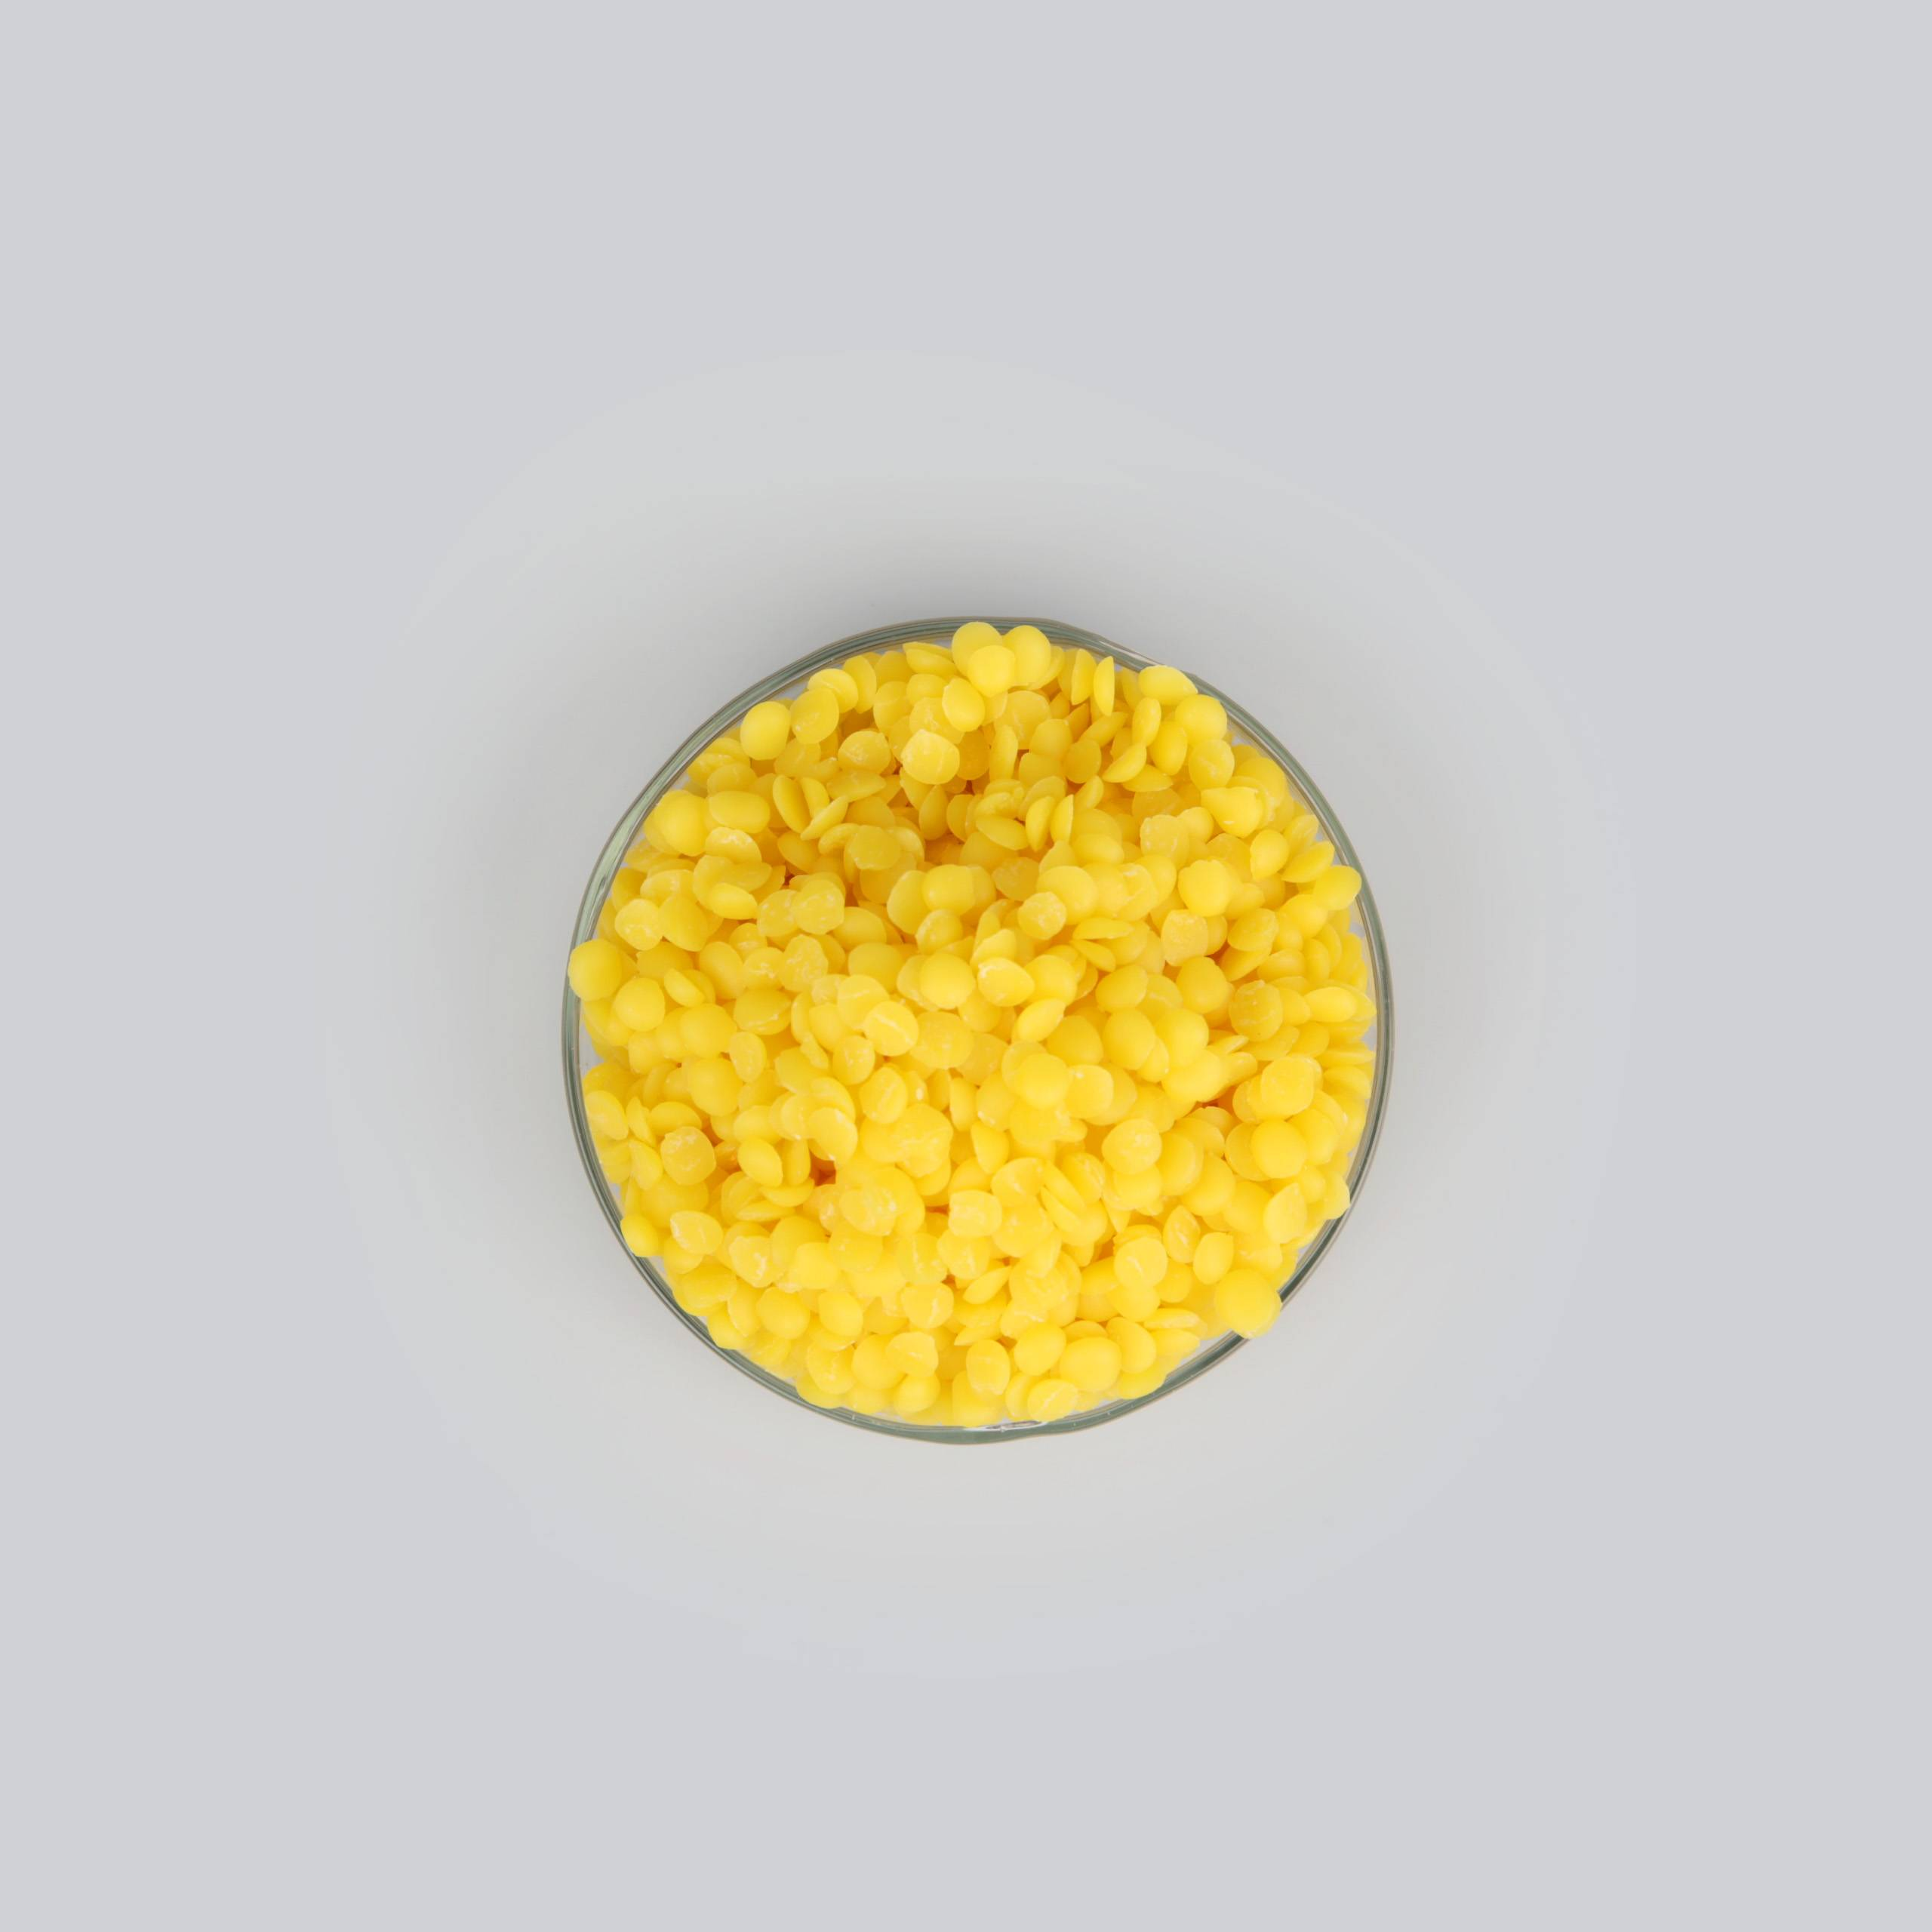 Bulk raw natural yellow beeswax from China